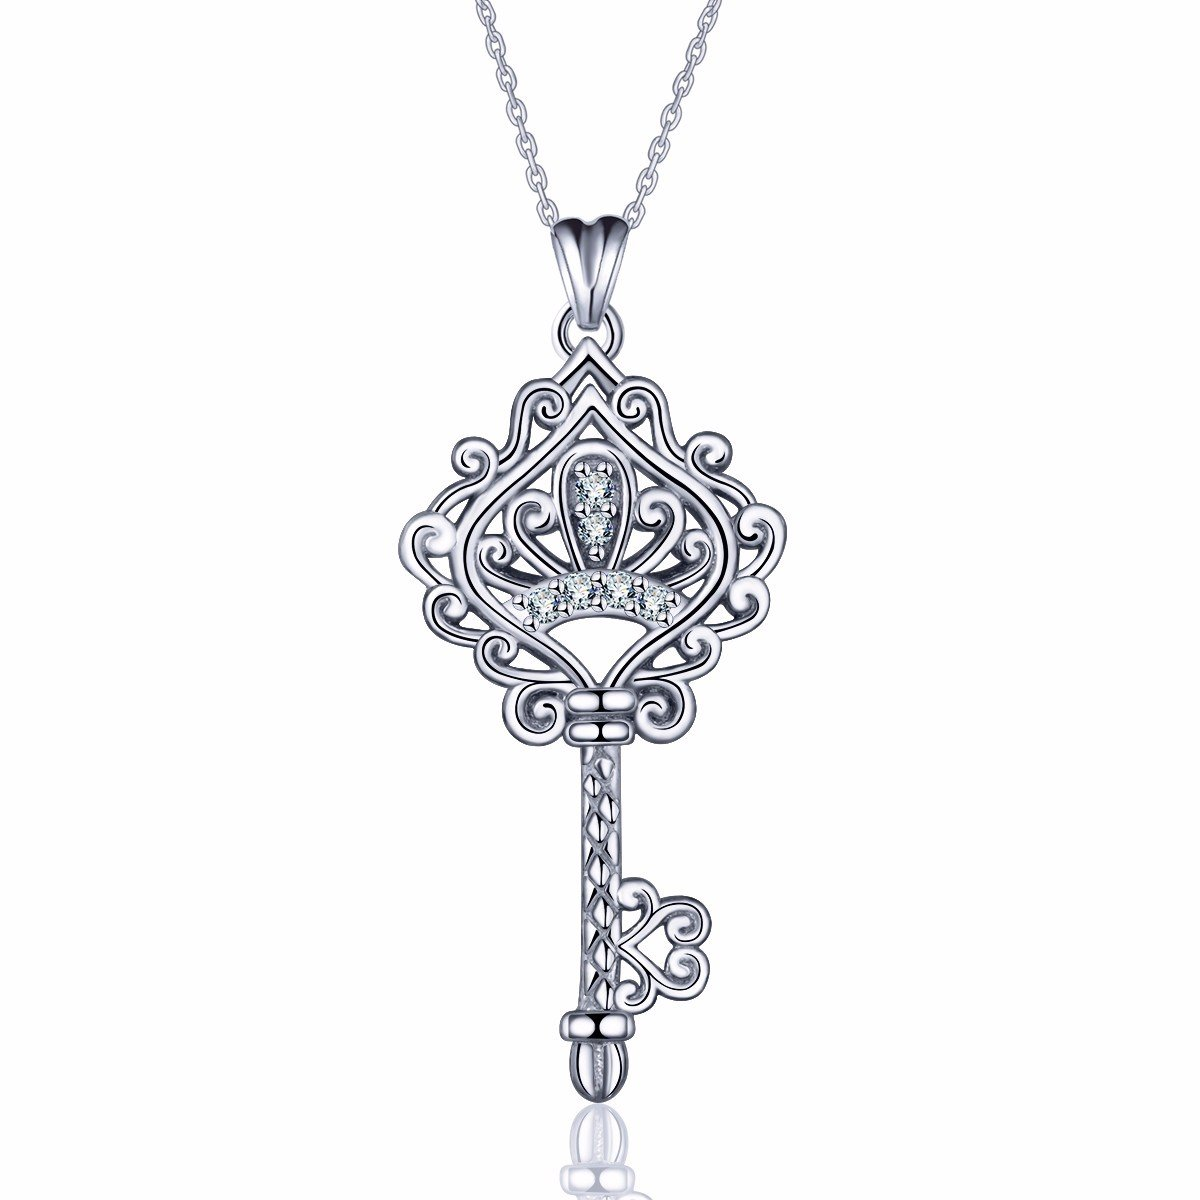 EUDORA 925 Sterling Silver Necklace''V&A Bless'' Key of Love Pendant 18 inch, Eternal Lucky Gift for Her